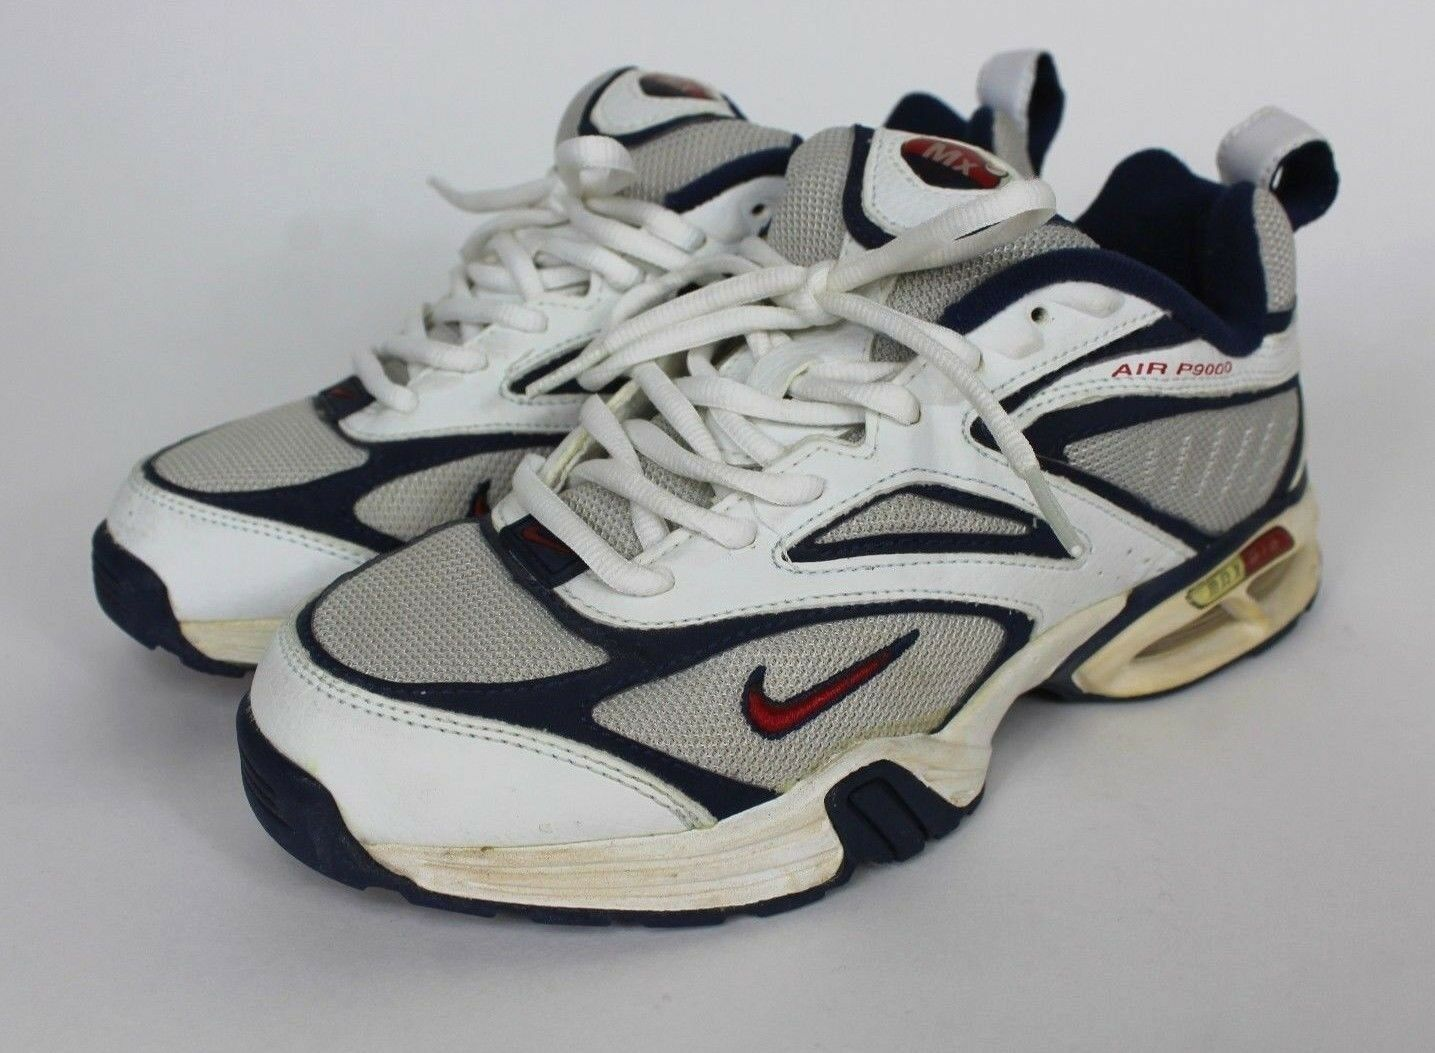 White NIKE AIR Trail Vintage 2002 Release P9000 Women's SIZE 7.5 Running Shoes